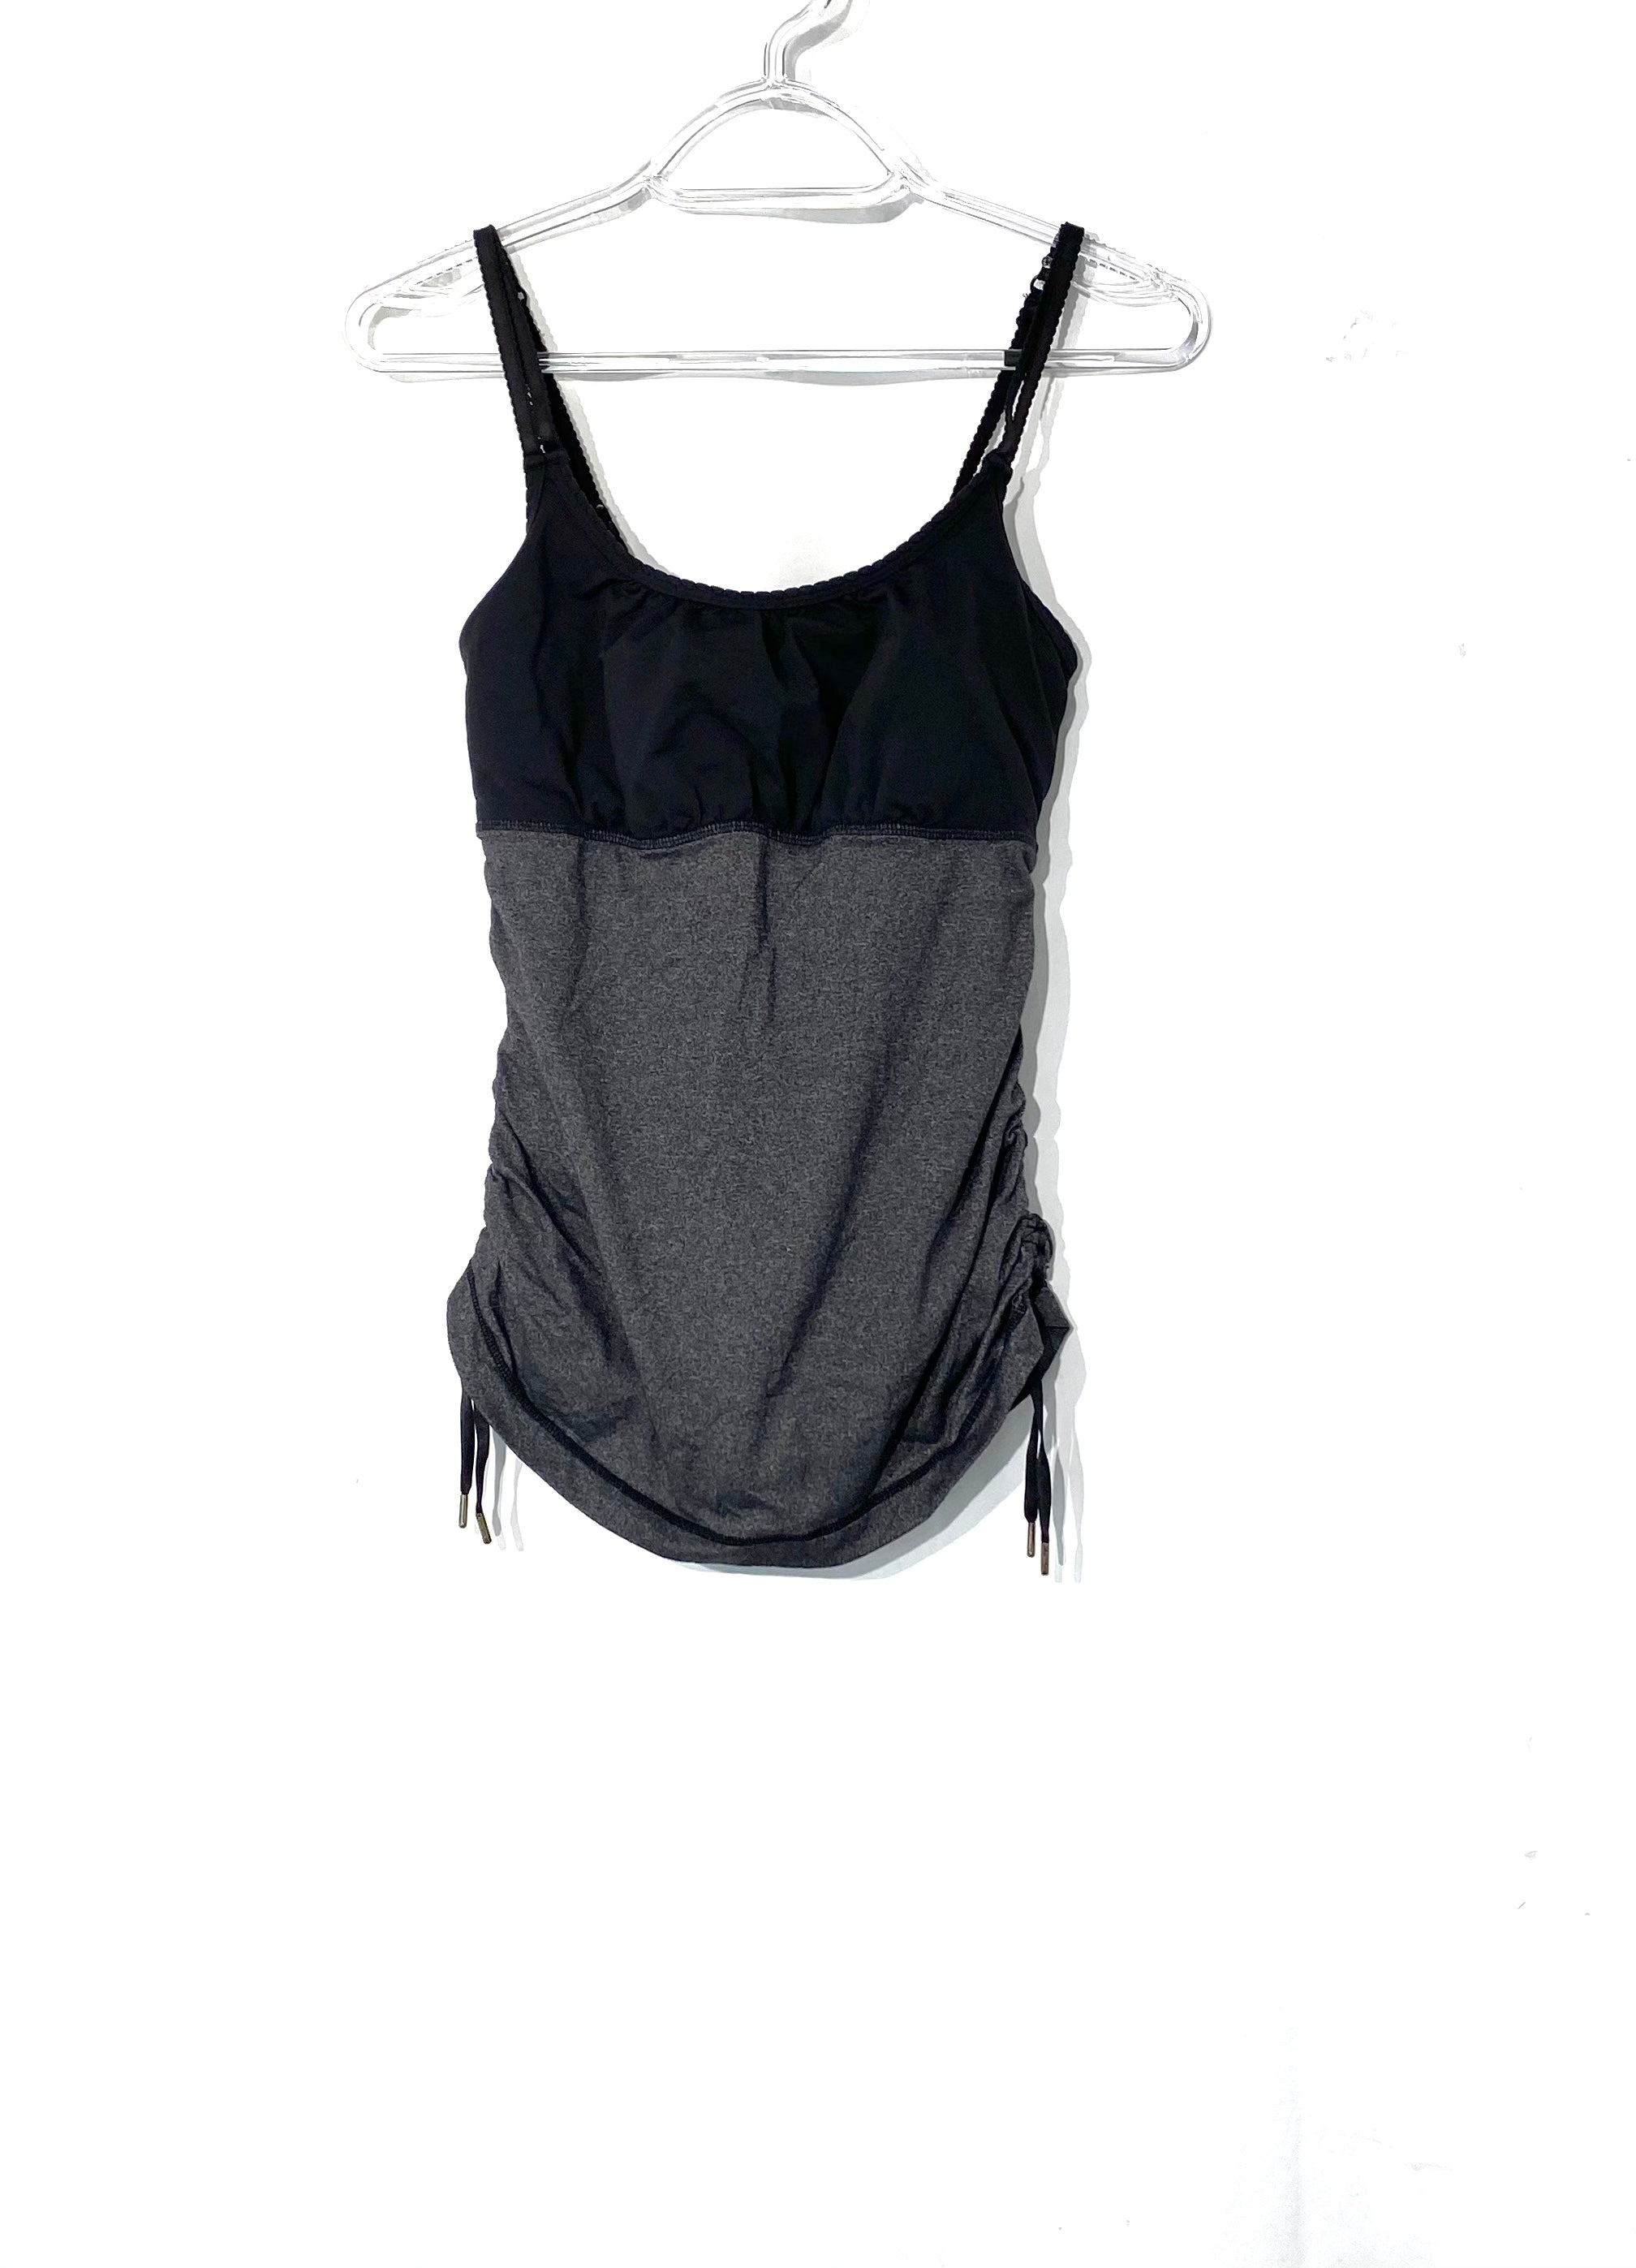 Primary Photo - BRAND: LULULEMON <BR>STYLE: ATHLETIC TANK TOP <BR>COLOR: BLACK <BR>SIZE: XS /S<BR>SKU: 262-26275-72192<BR>DESIGNER FINAL <BR>SIZE TAG MISSING AS IS <BR>BRA INSERTS MISSING AS IS<BR>GENTLE WEAR